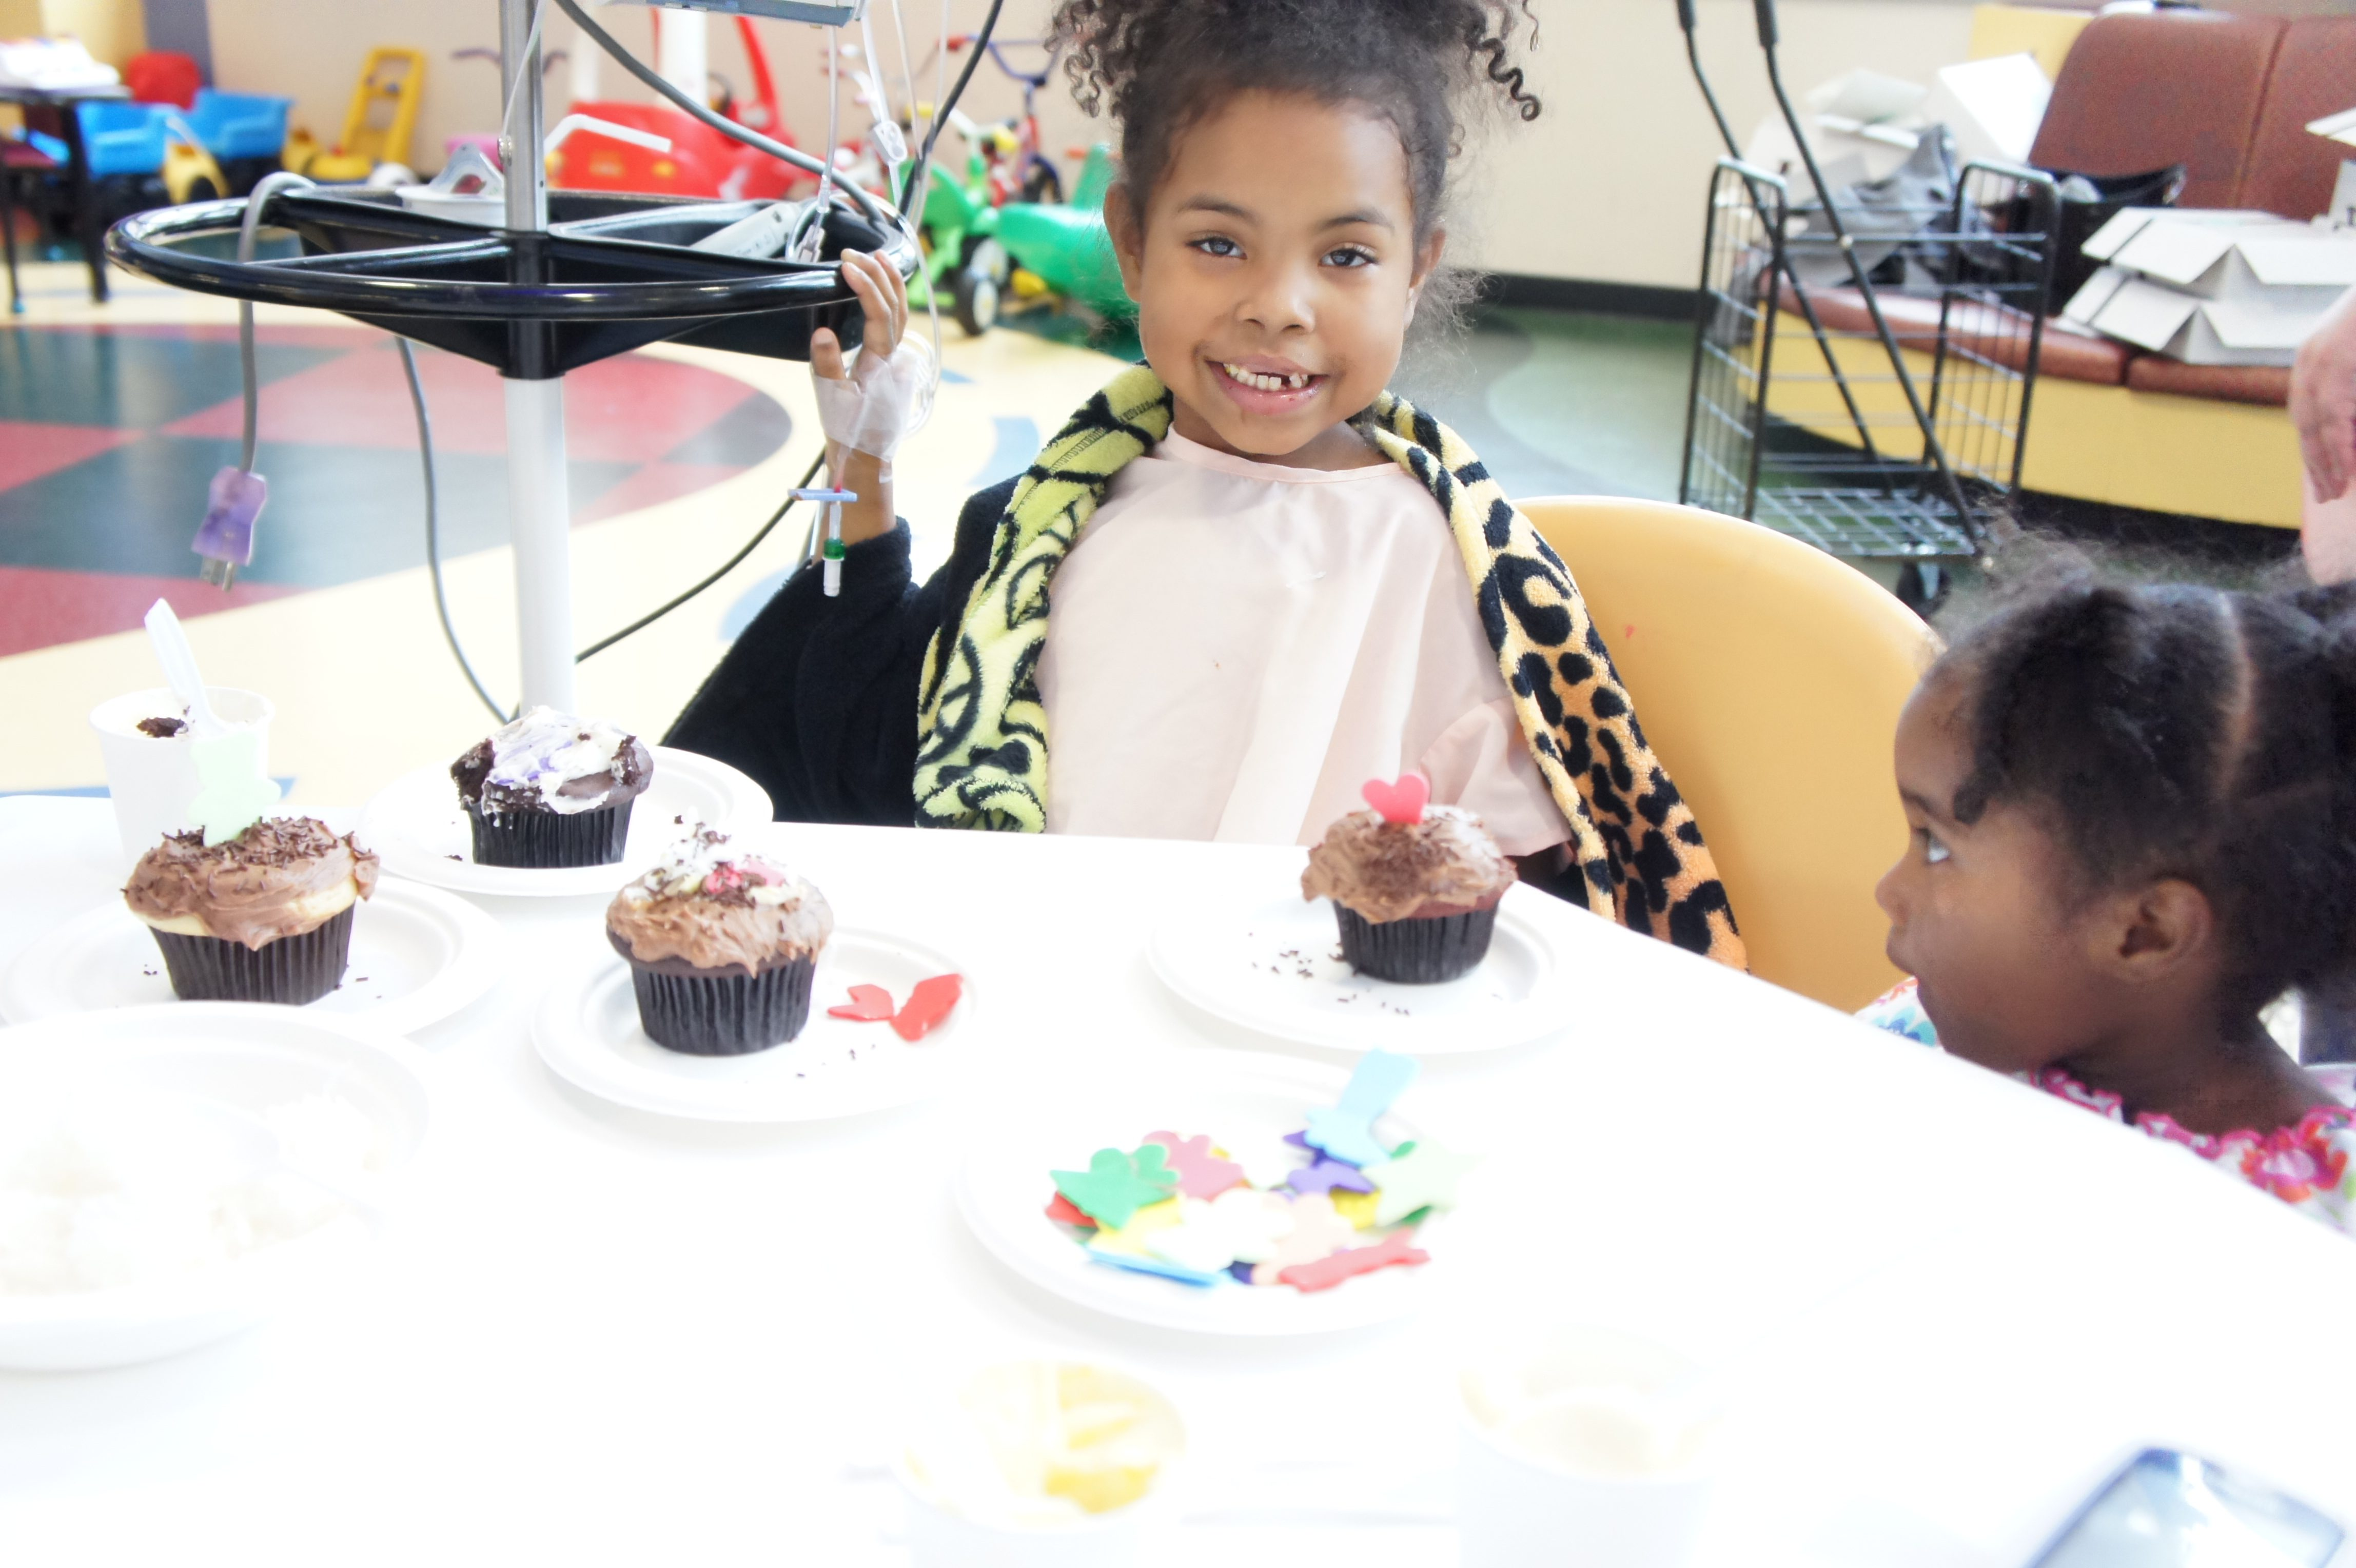 Jakaya Crawfod, a patient at MD Anderson Children's Cancer Hospital, prepares to enjoy a piece of edible art as her sister looks on at the recent party celebrating Crave Cupcakes' partnership with Arts in Medicine. Photo by Ian Cion.